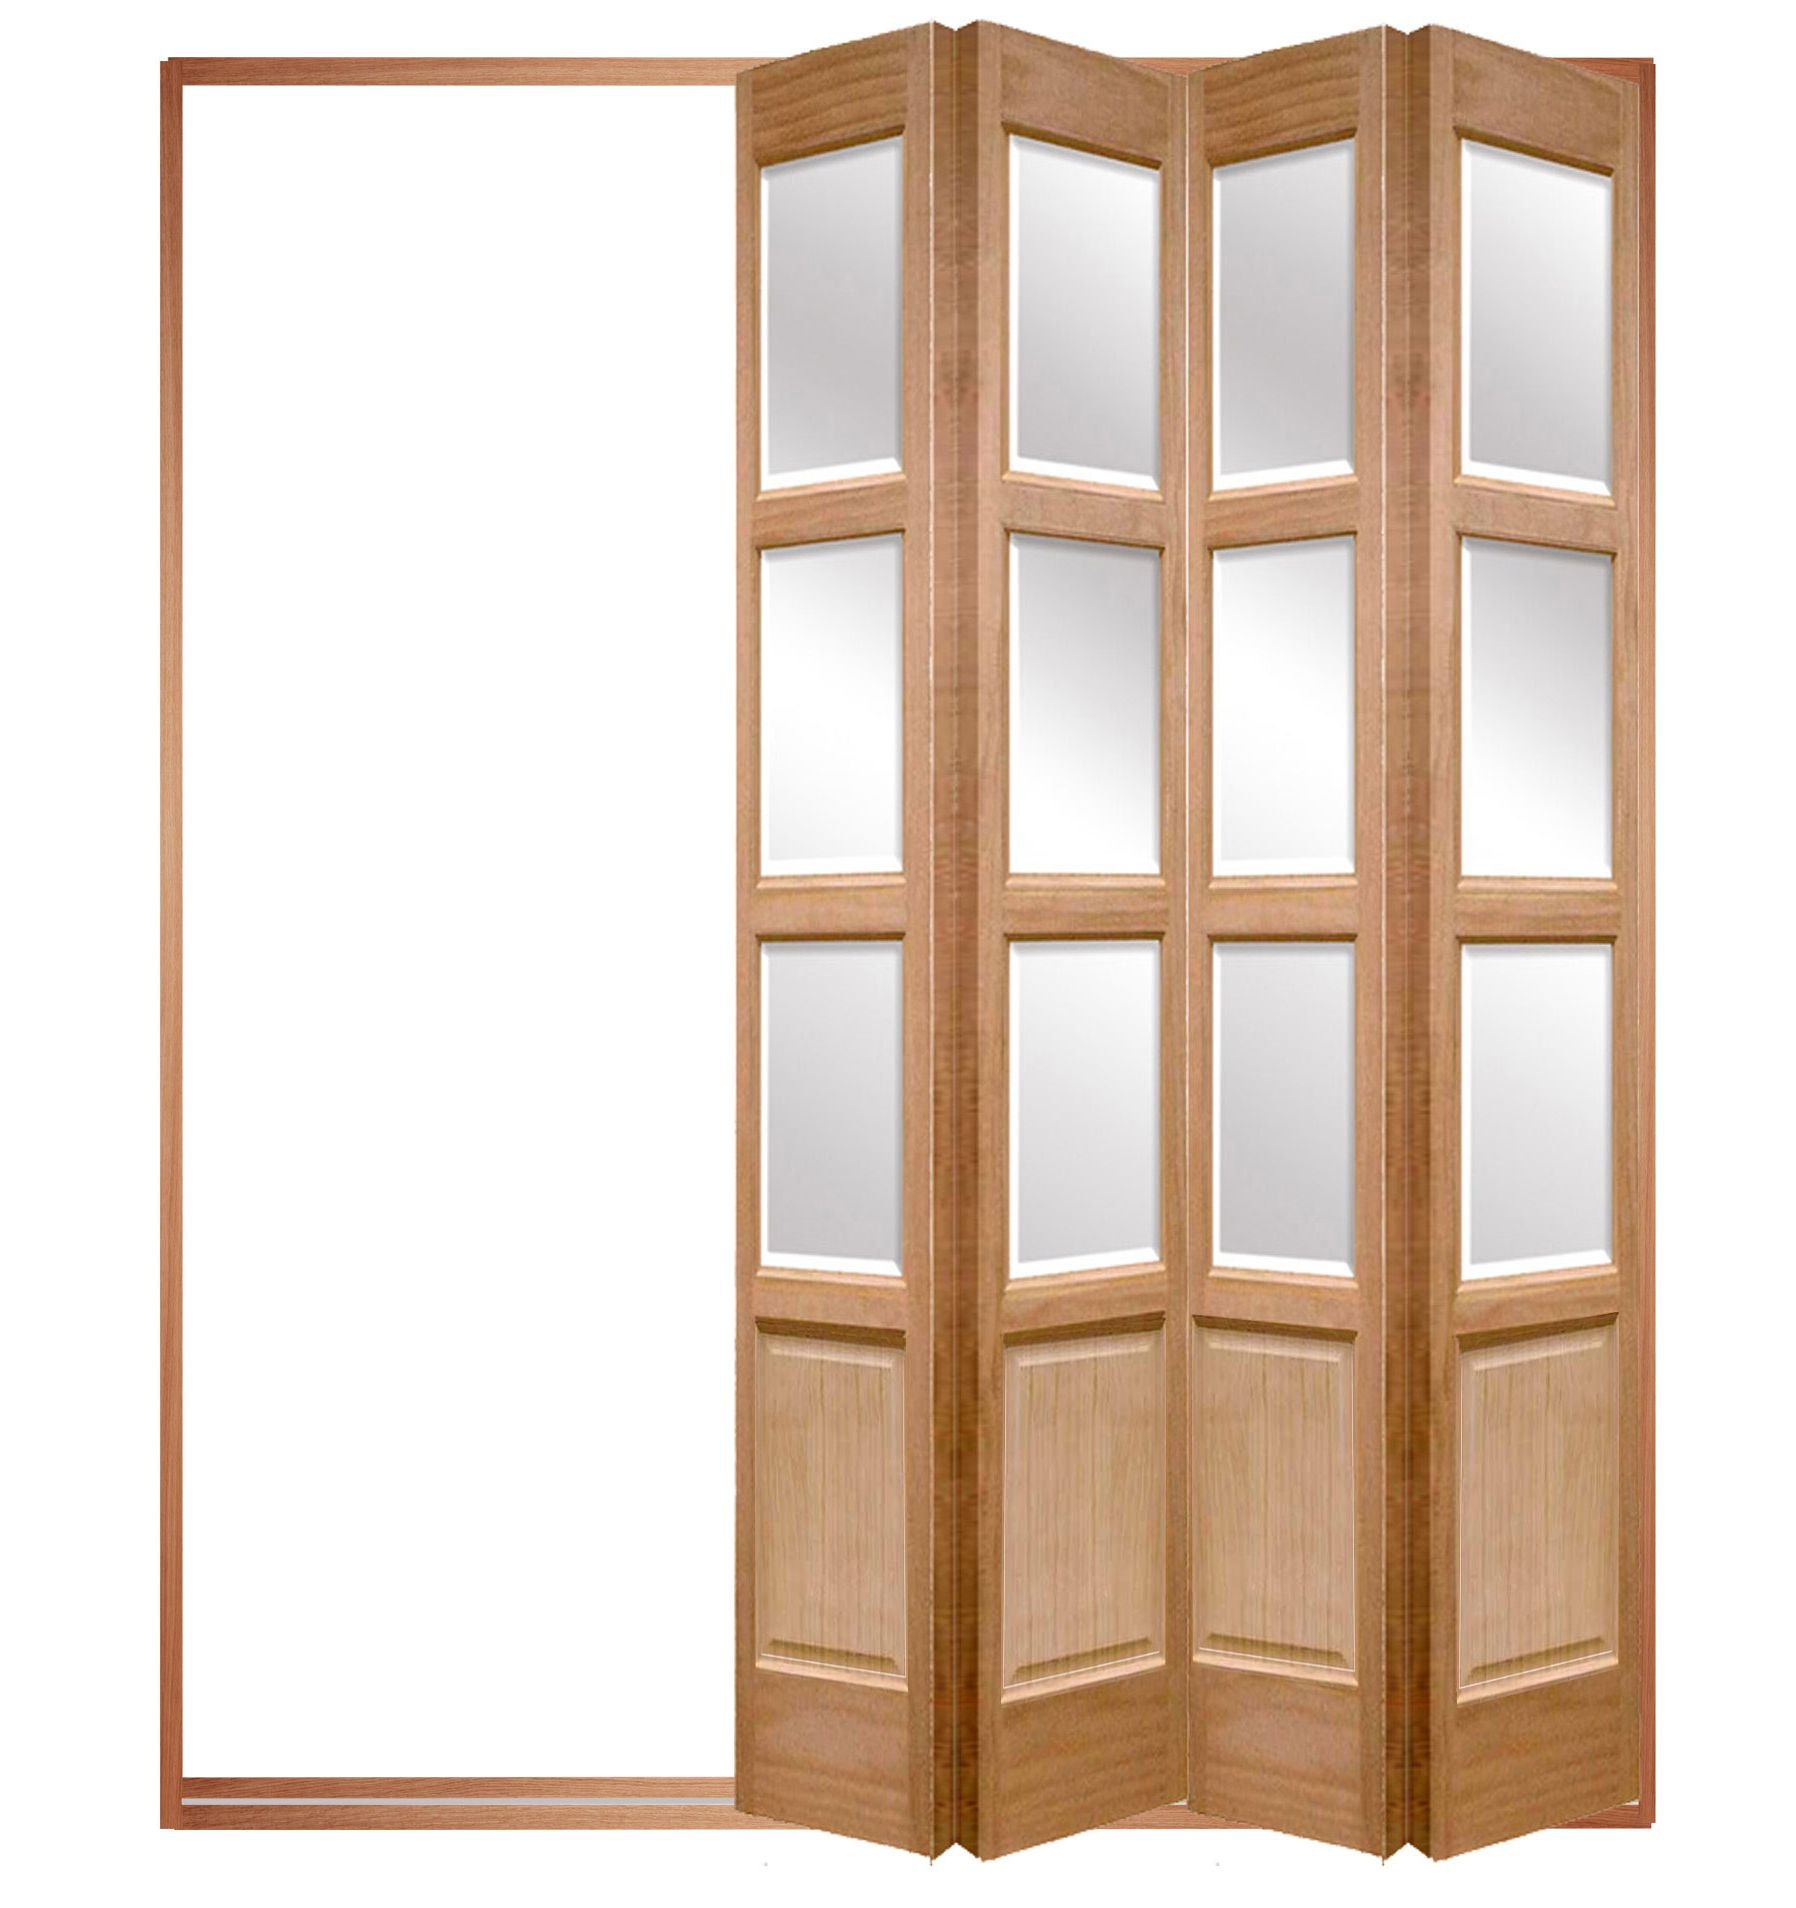 folding wooden doors interior wooden folding doors interior interior sliding folding doors